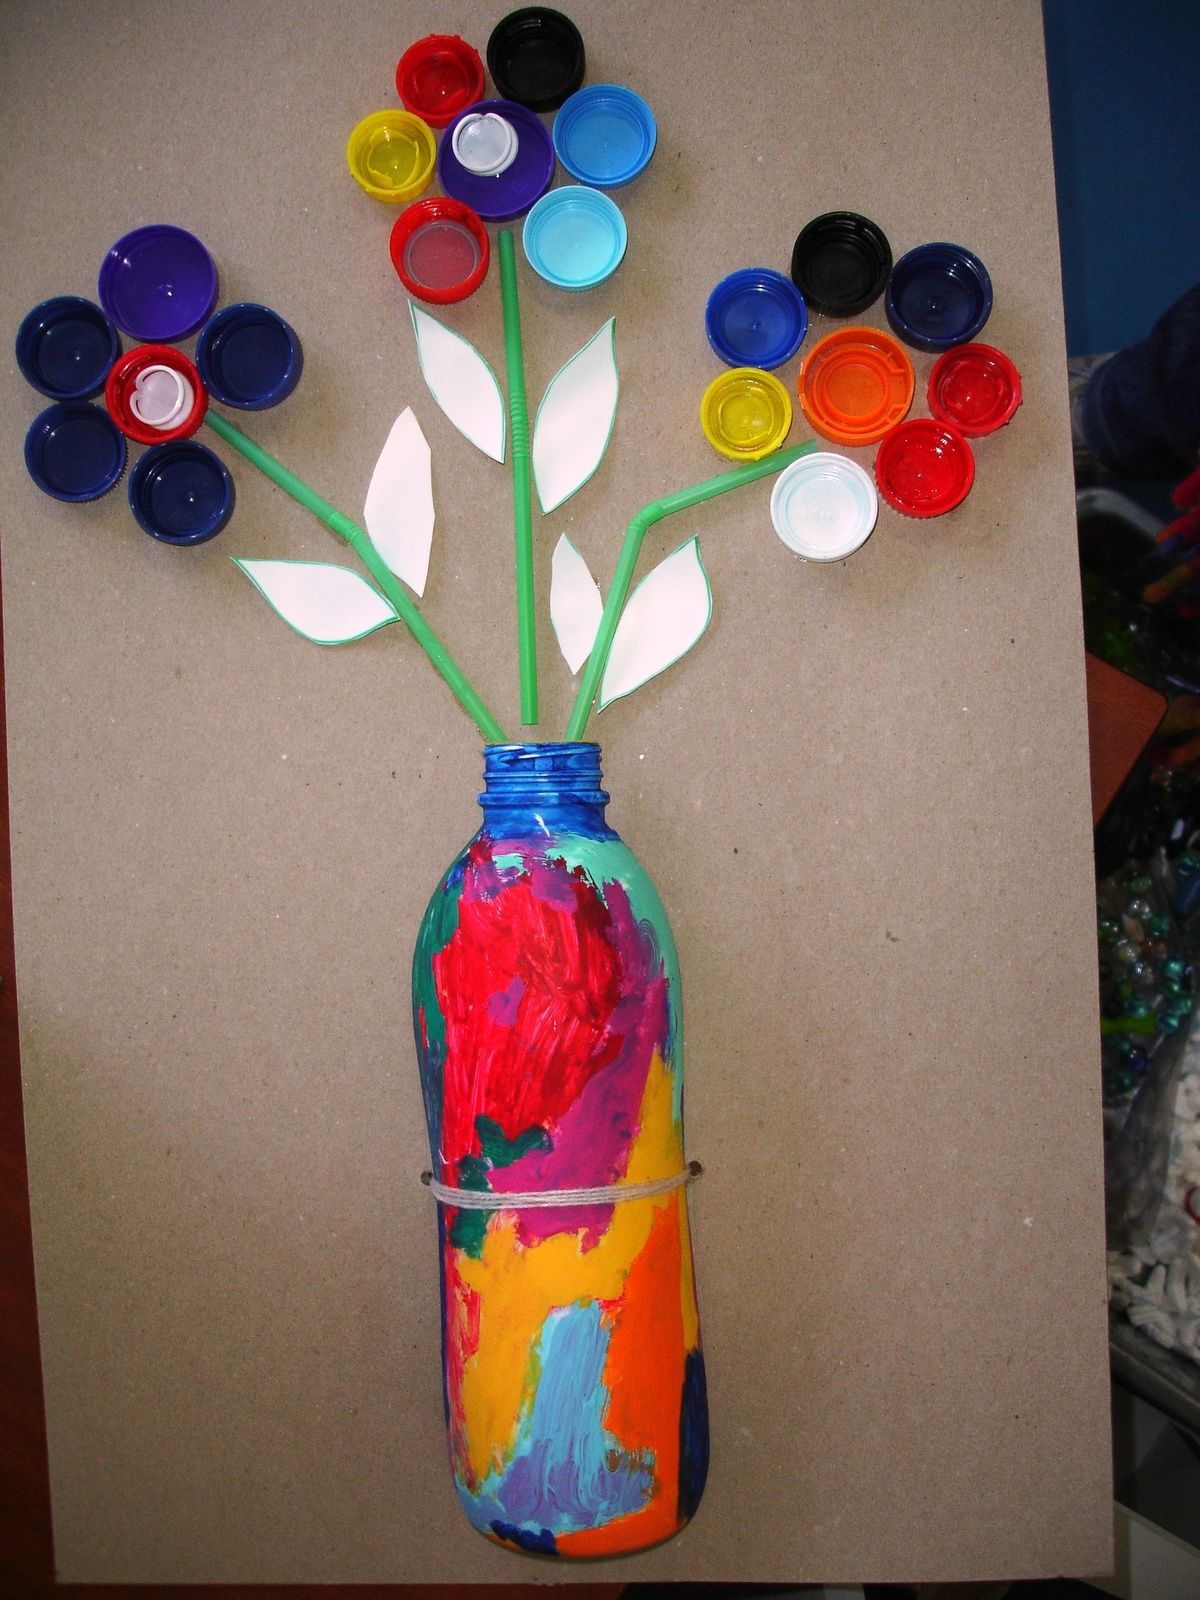 pin by teresa brown on crafts for children | crafts, recycled crafts